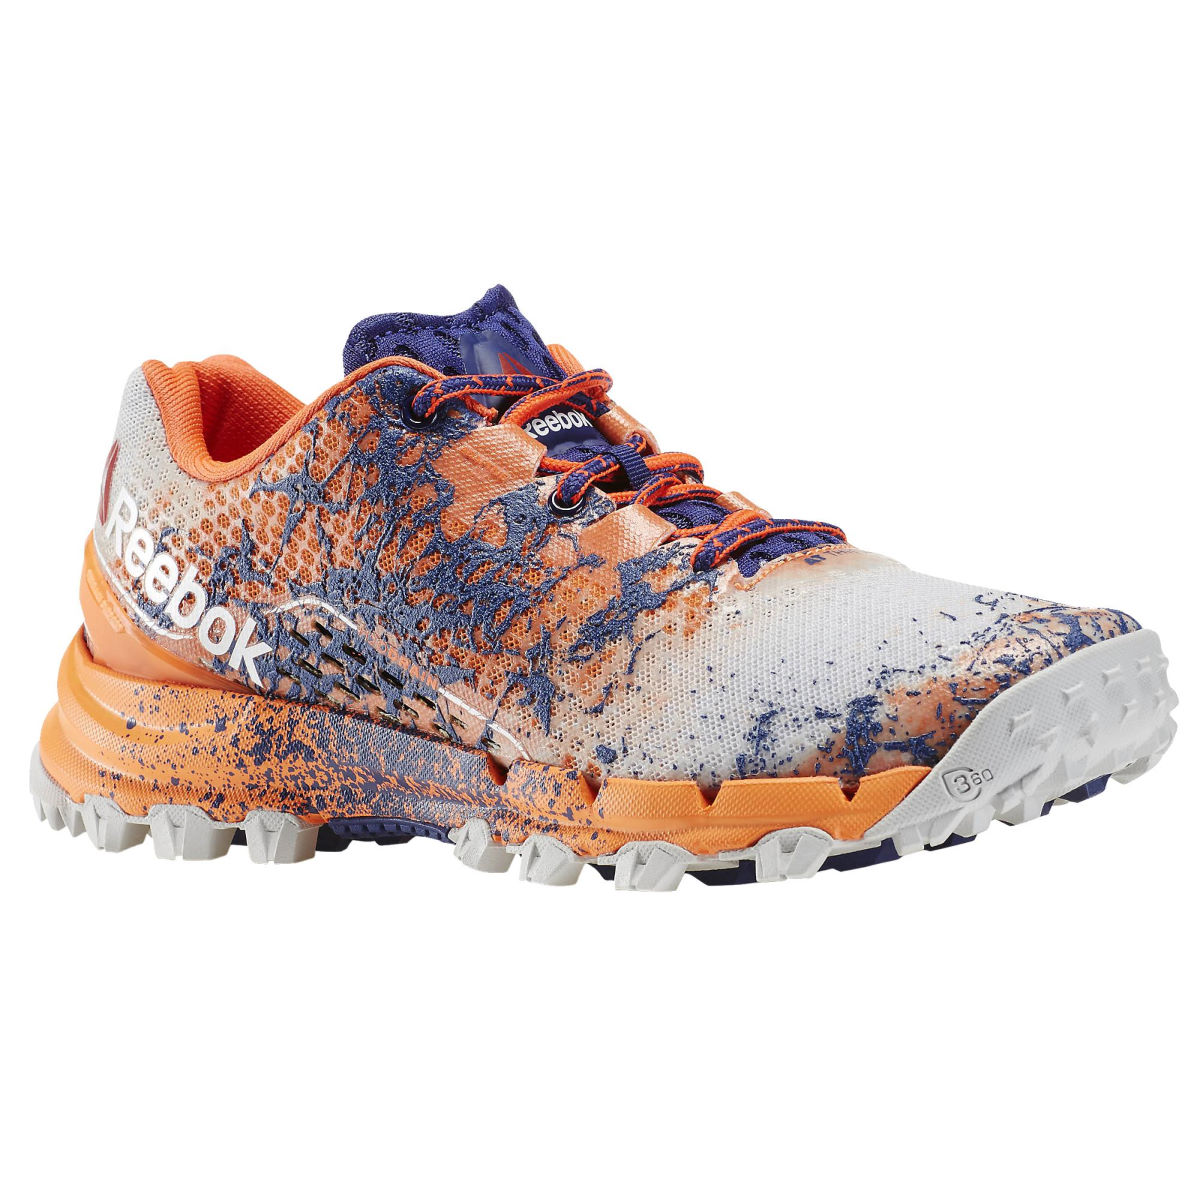 Reebok Women's All Terrain Thrill Shoes (SS16) - UK 8 Peach